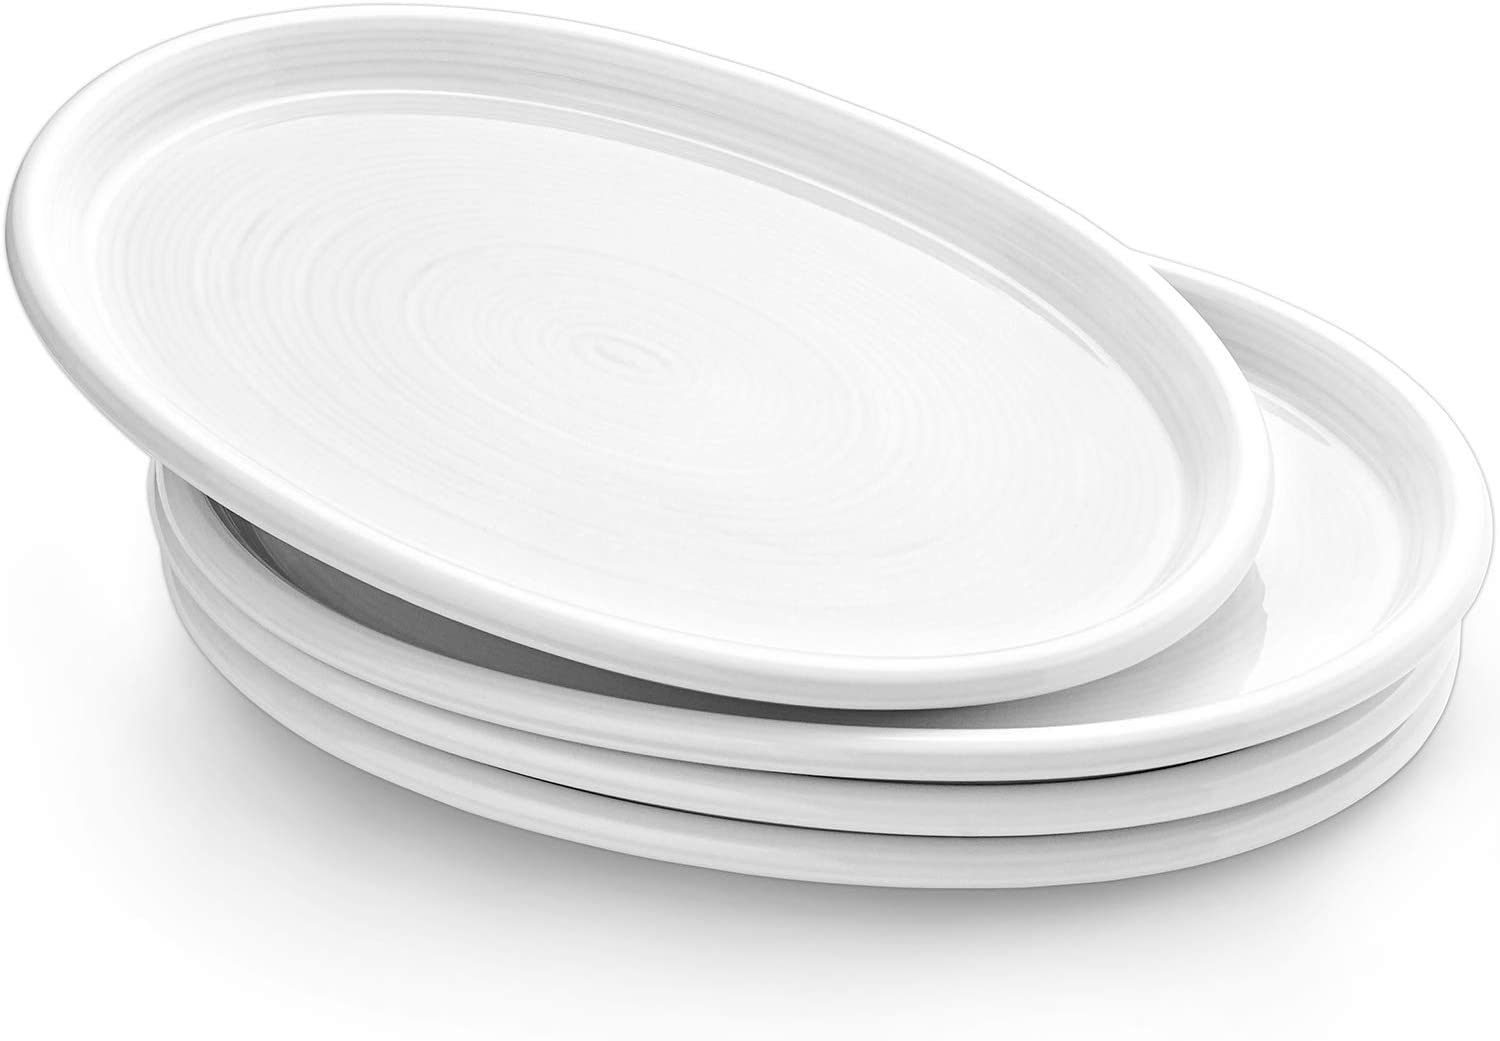 LE TAUCI Serving Platter Dishes, 12-inch Ceramic Serving Ware Oval, Dinner Plates Oven Safe, Party Trays Set for Turkey, Meat, Fish, Appetizers, Snacks, Sushi, Dessert, Set of 4, White